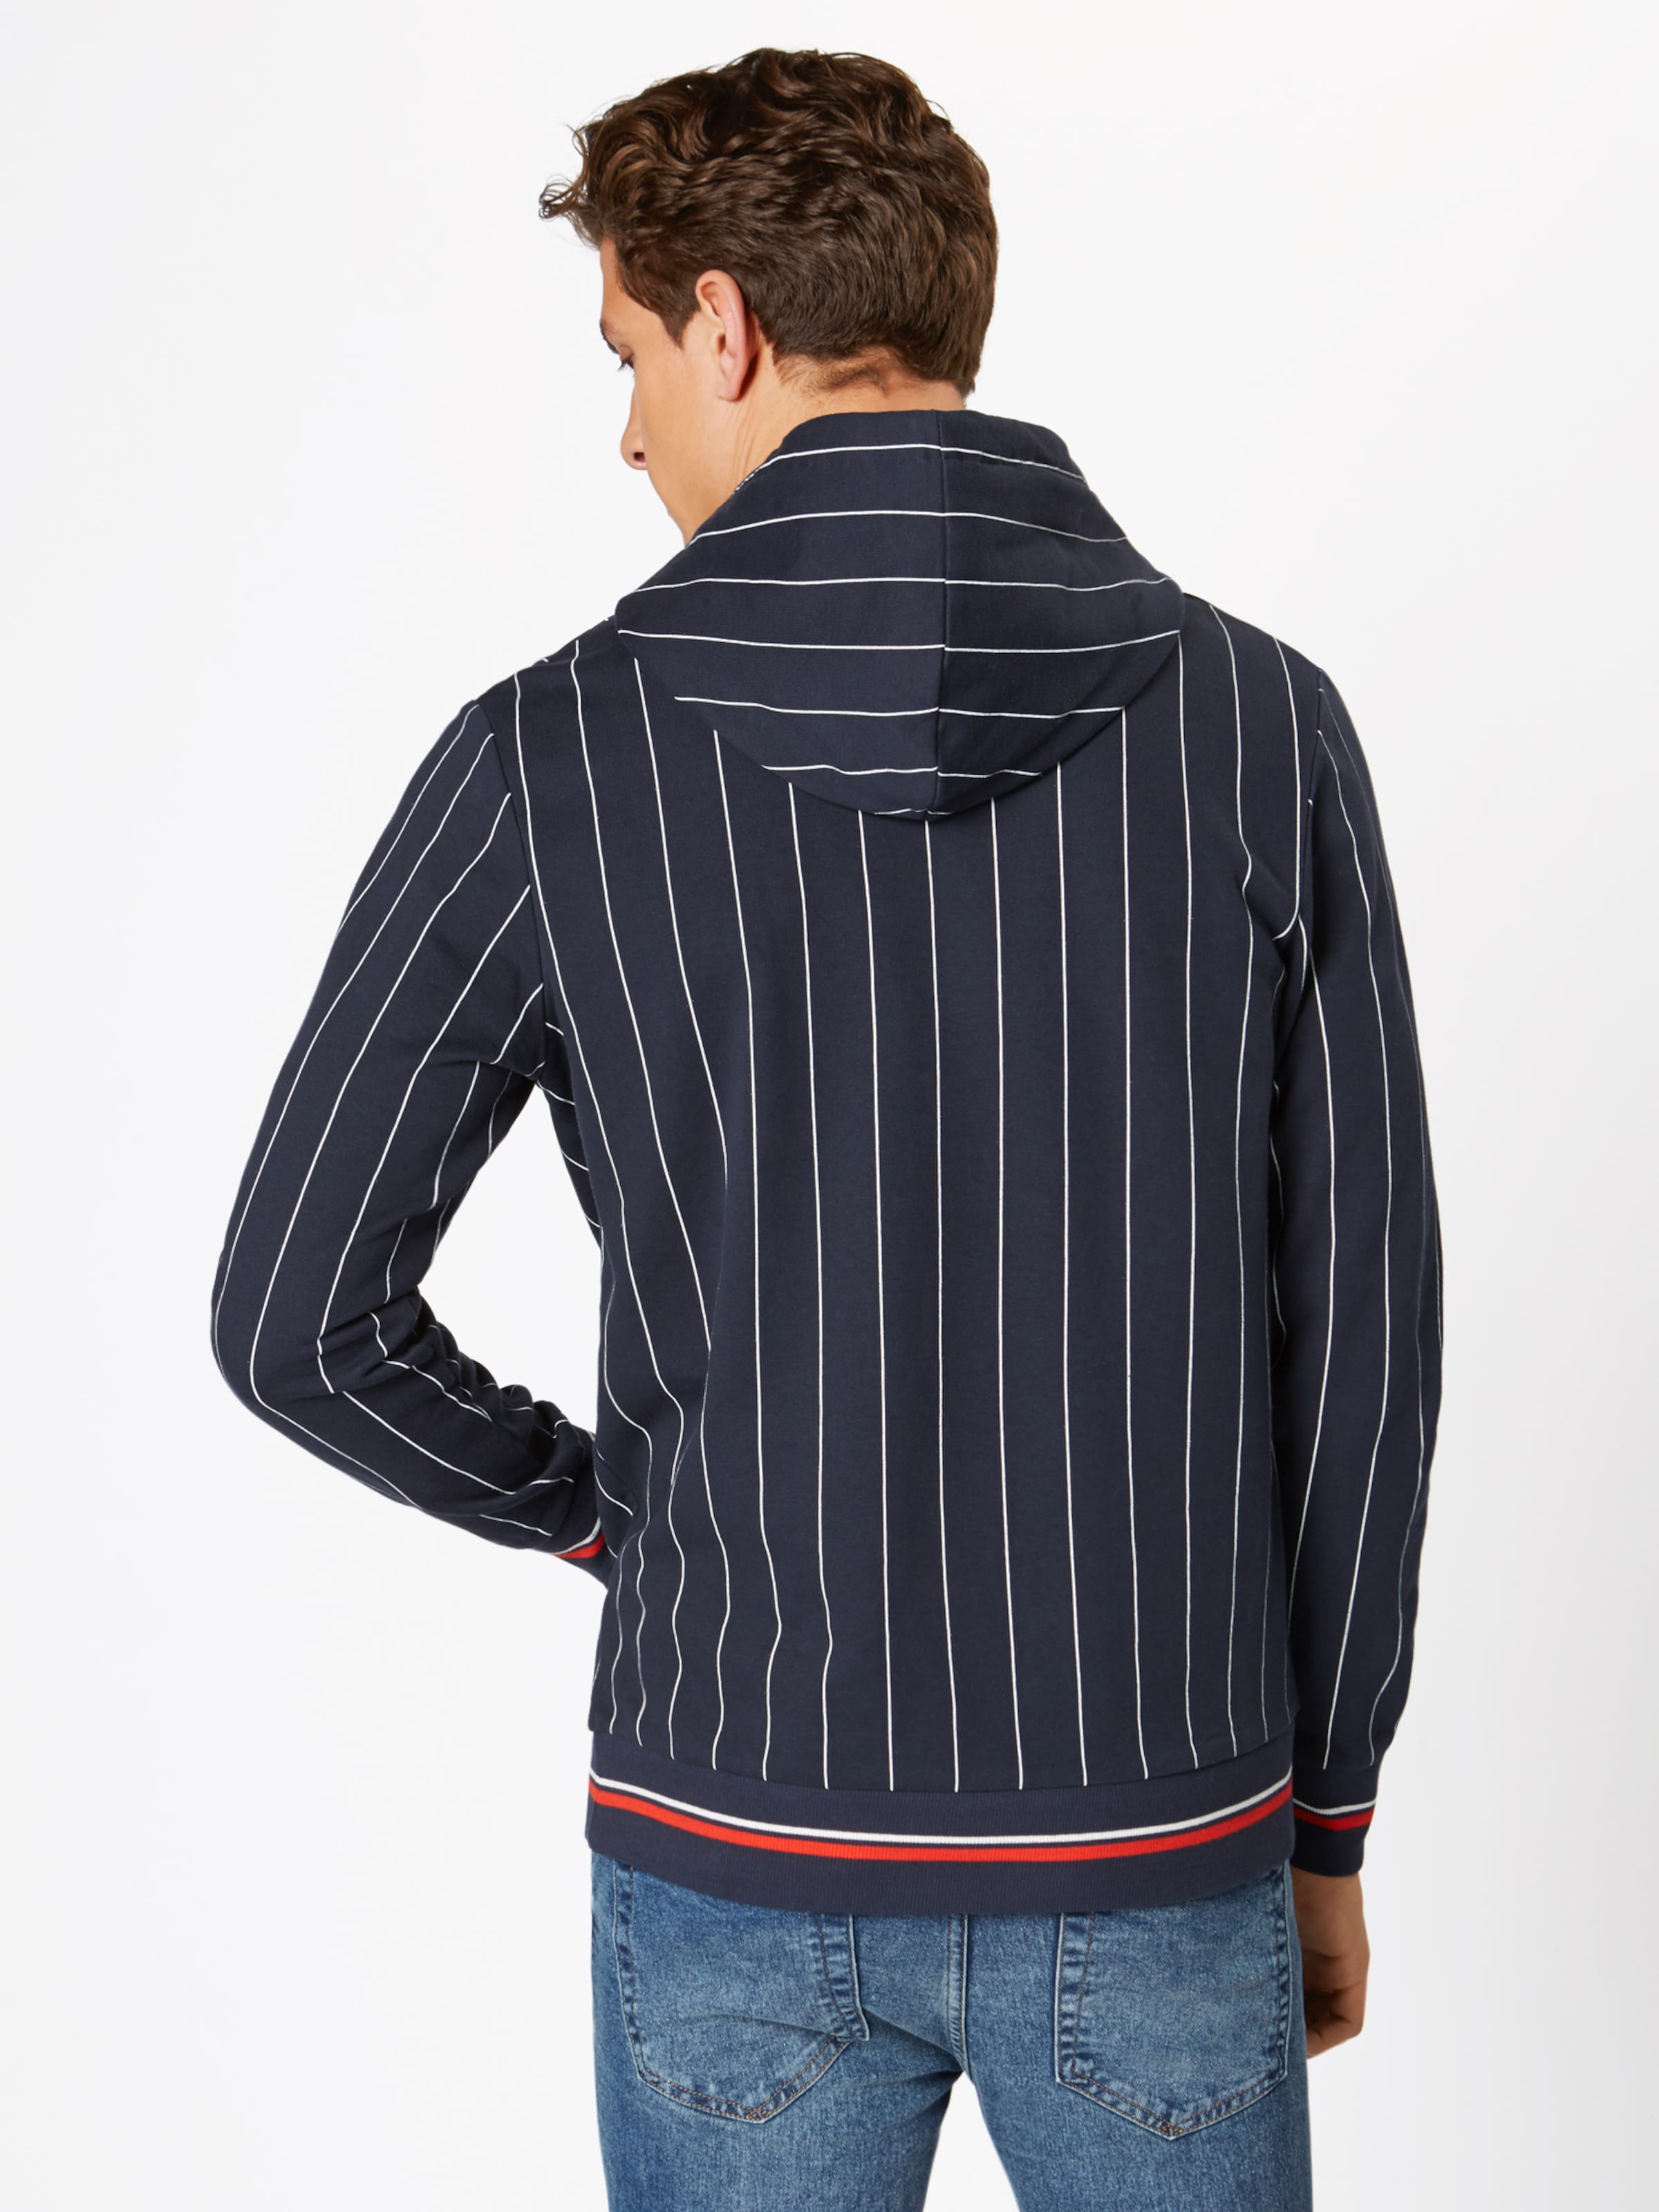 En FoncéBlanc 'pinstripe' shirt Jones Bleu Sweat Jackamp; pqSUMGVz